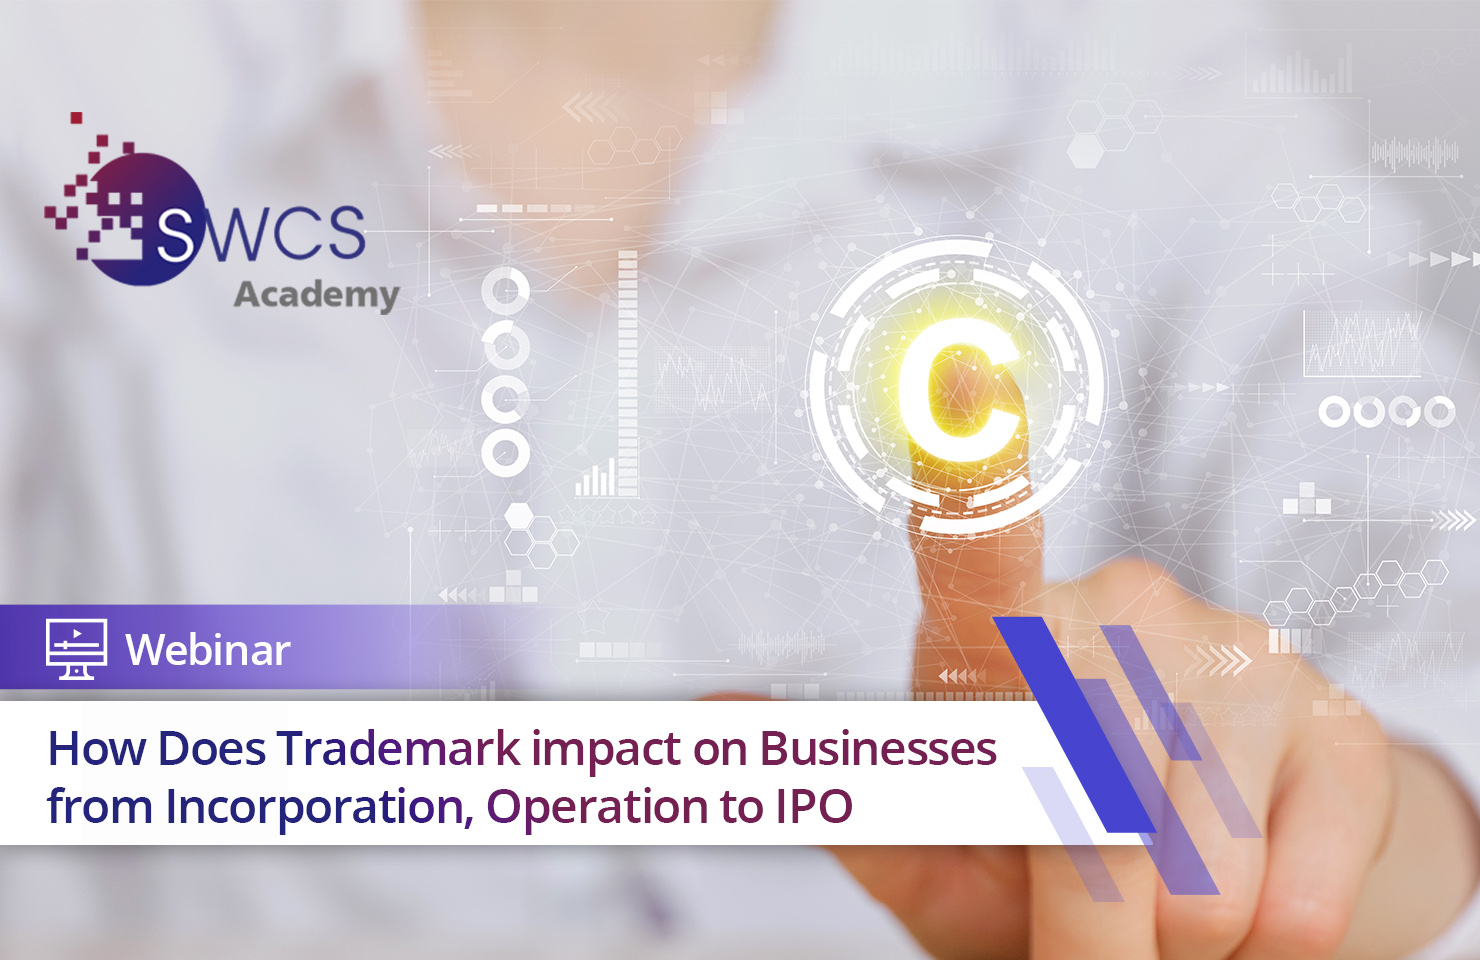 How Does Trademark impact on Businesses from Incorporation, Operation to IPO